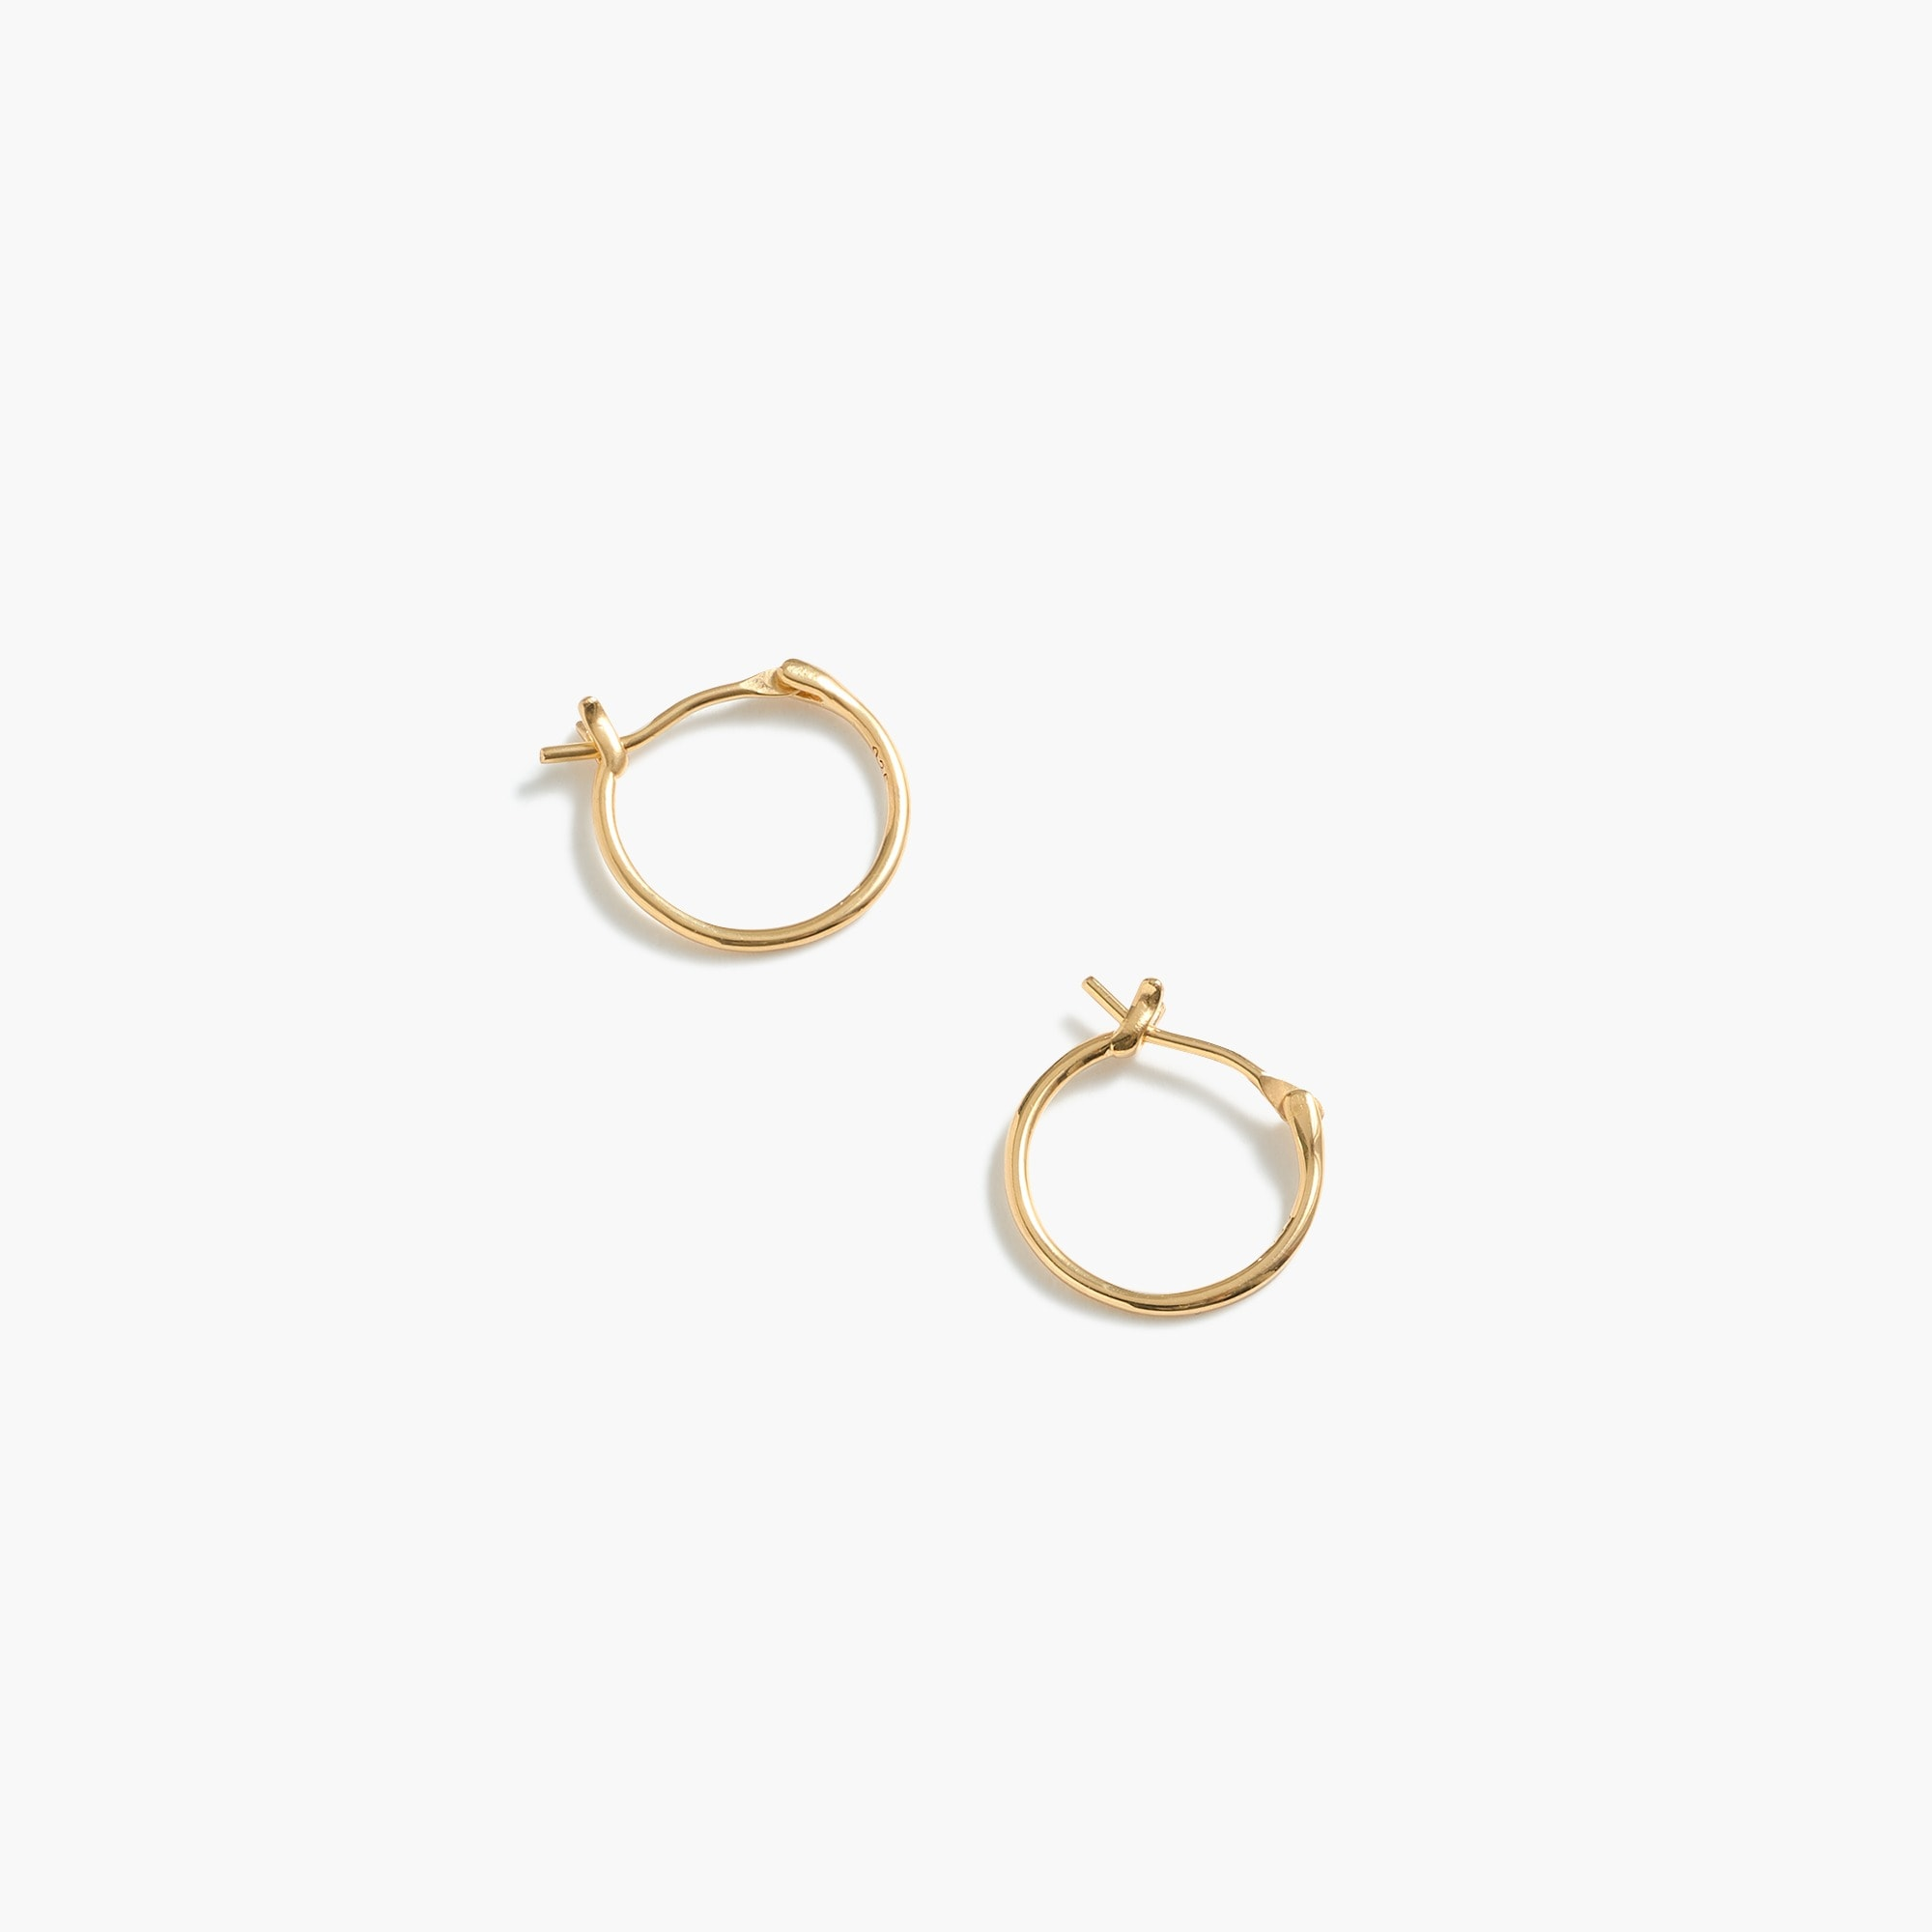 Demi-fine 14k gold-plated mini-hoop earrings women jewelry c